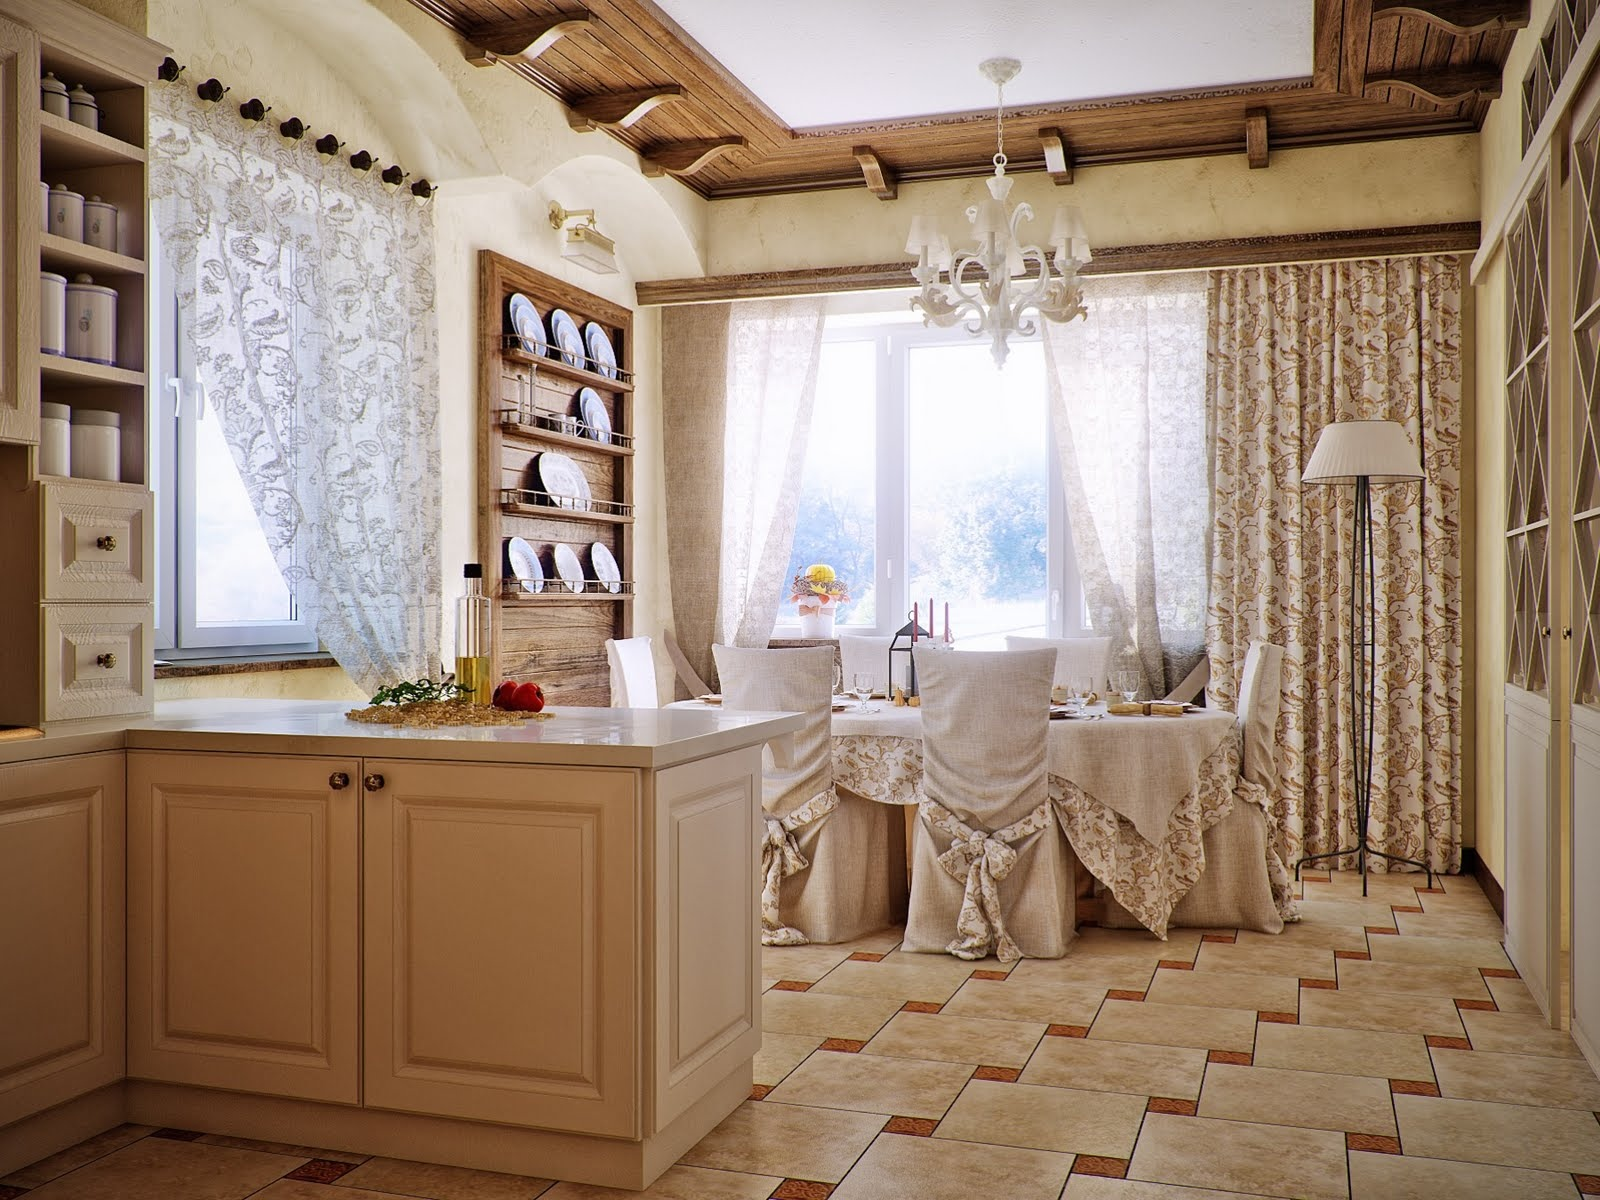 kitchen-dining-designs-inspiration-and-ideas-7